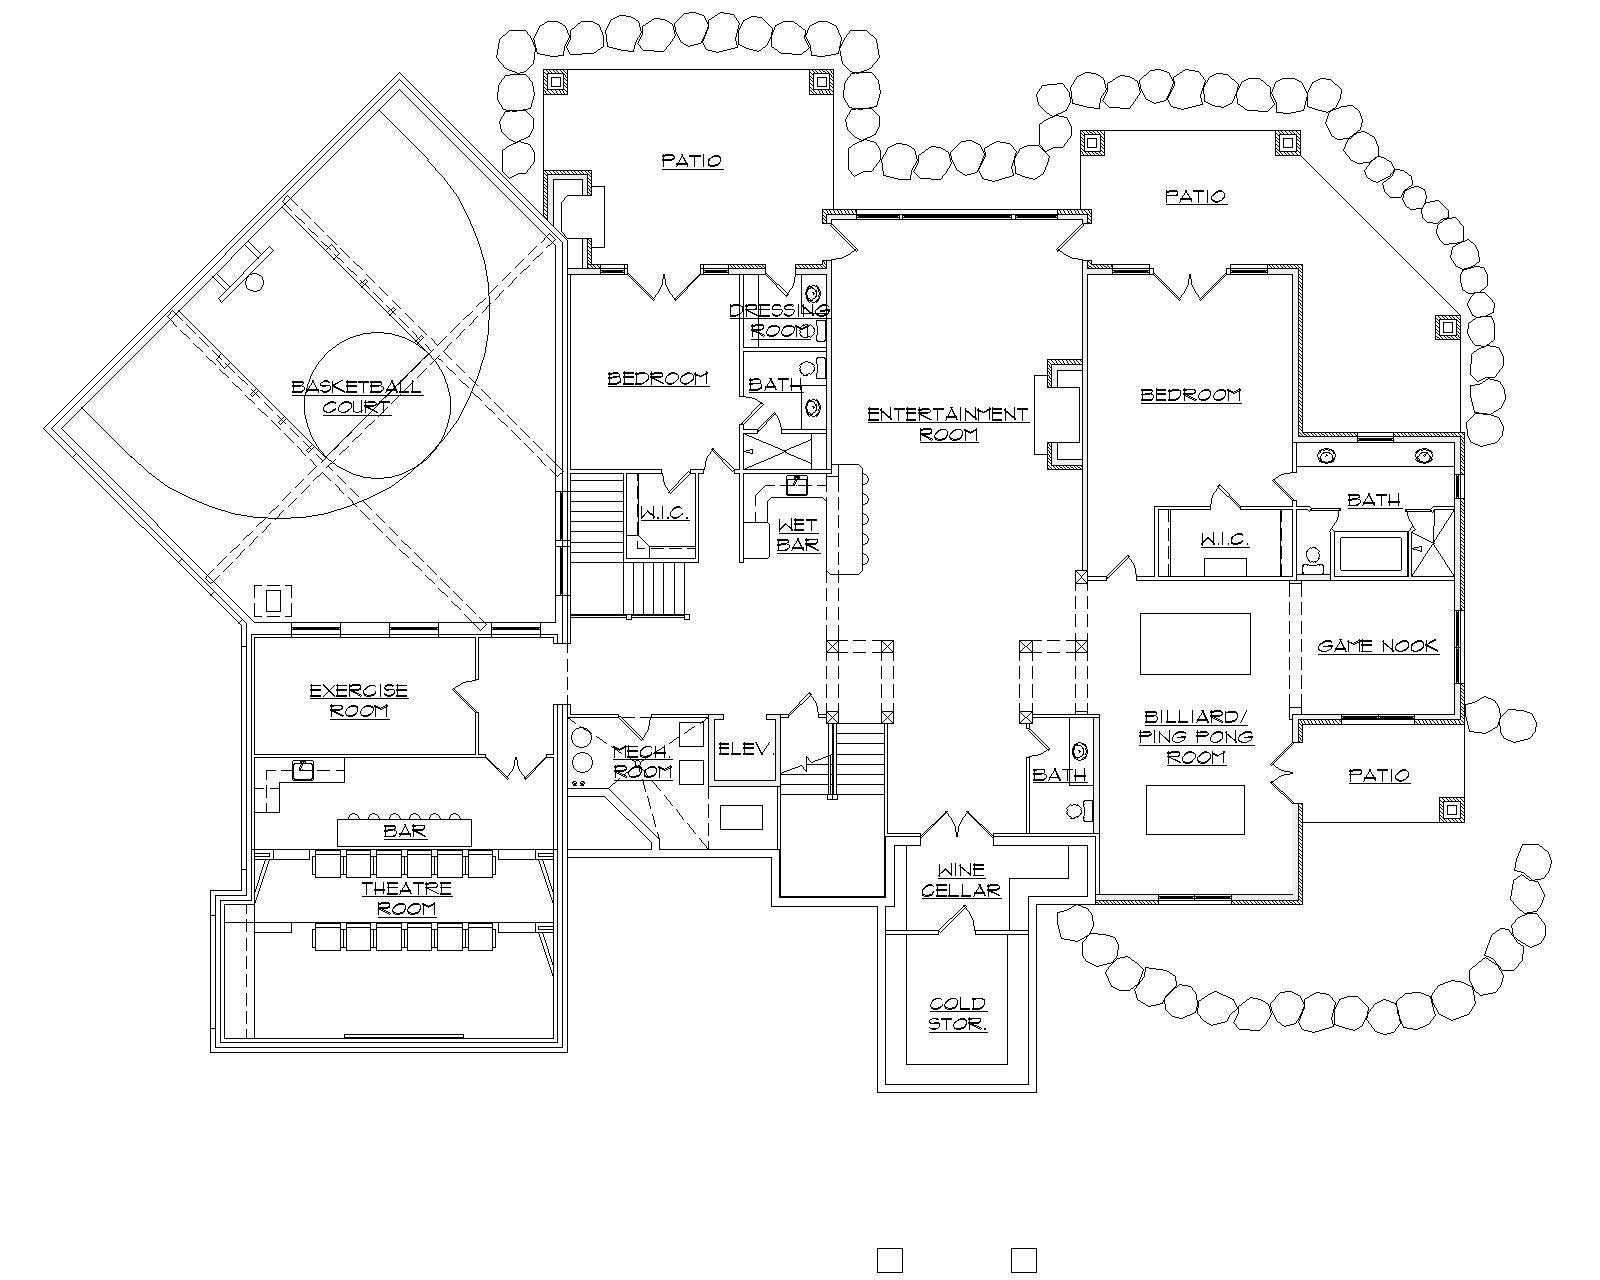 house plans with indoor basketball court how to costs ForHouse Plans With Indoor Basketball Court